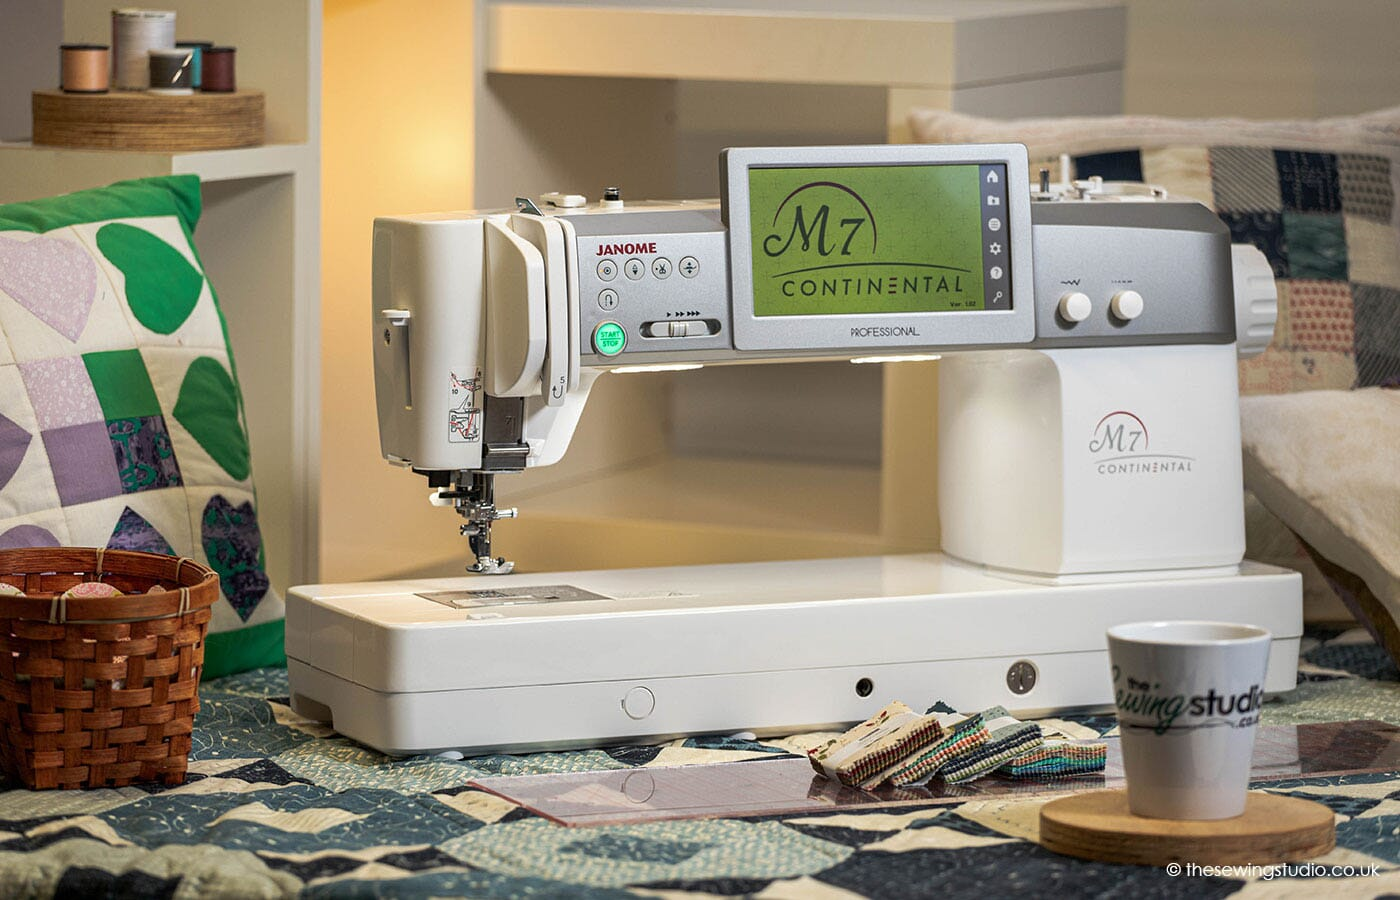 Janome M7 Continental Sewing Machine in a Sewing Room